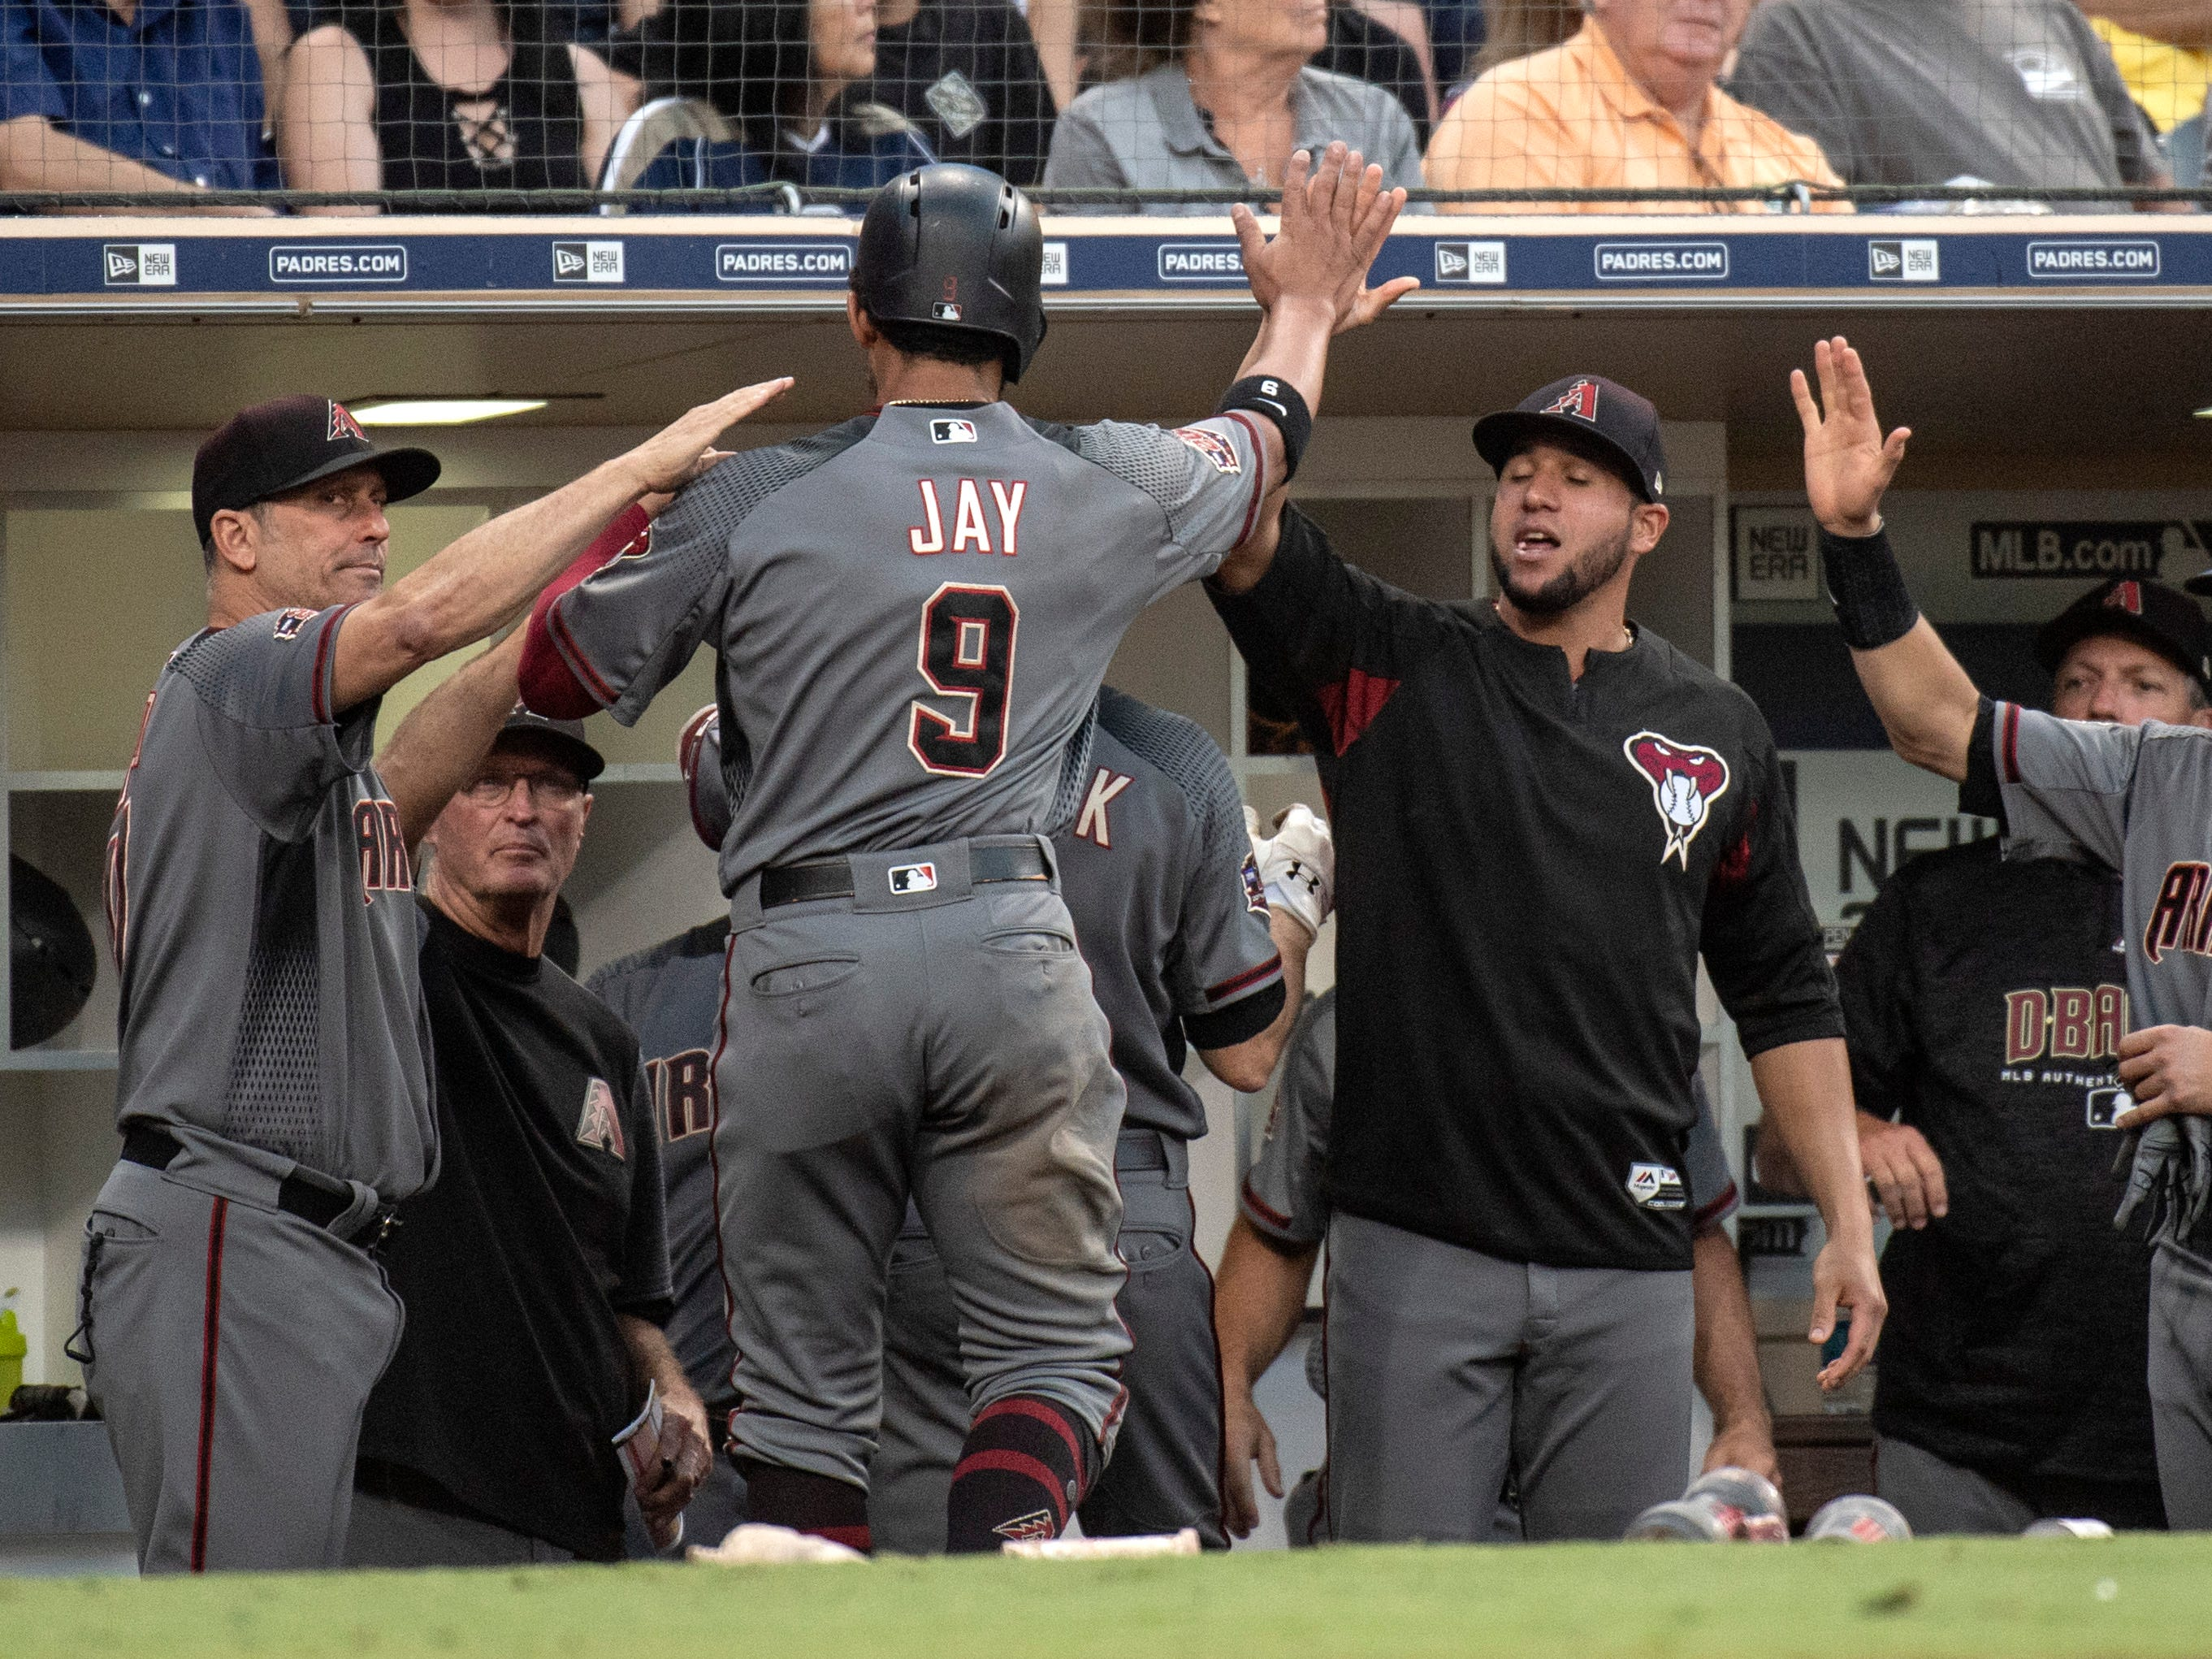 Arizona Diamondbacks' Jon Jay (9) is welcomed in the dugout after scoring on a sacrifice fly by A.J. Pollock during the fifth inning of a baseball game against the San Diego Padres in San Diego, Saturday, Aug. 18, 2018. (AP Photo/Kyusung Gong)